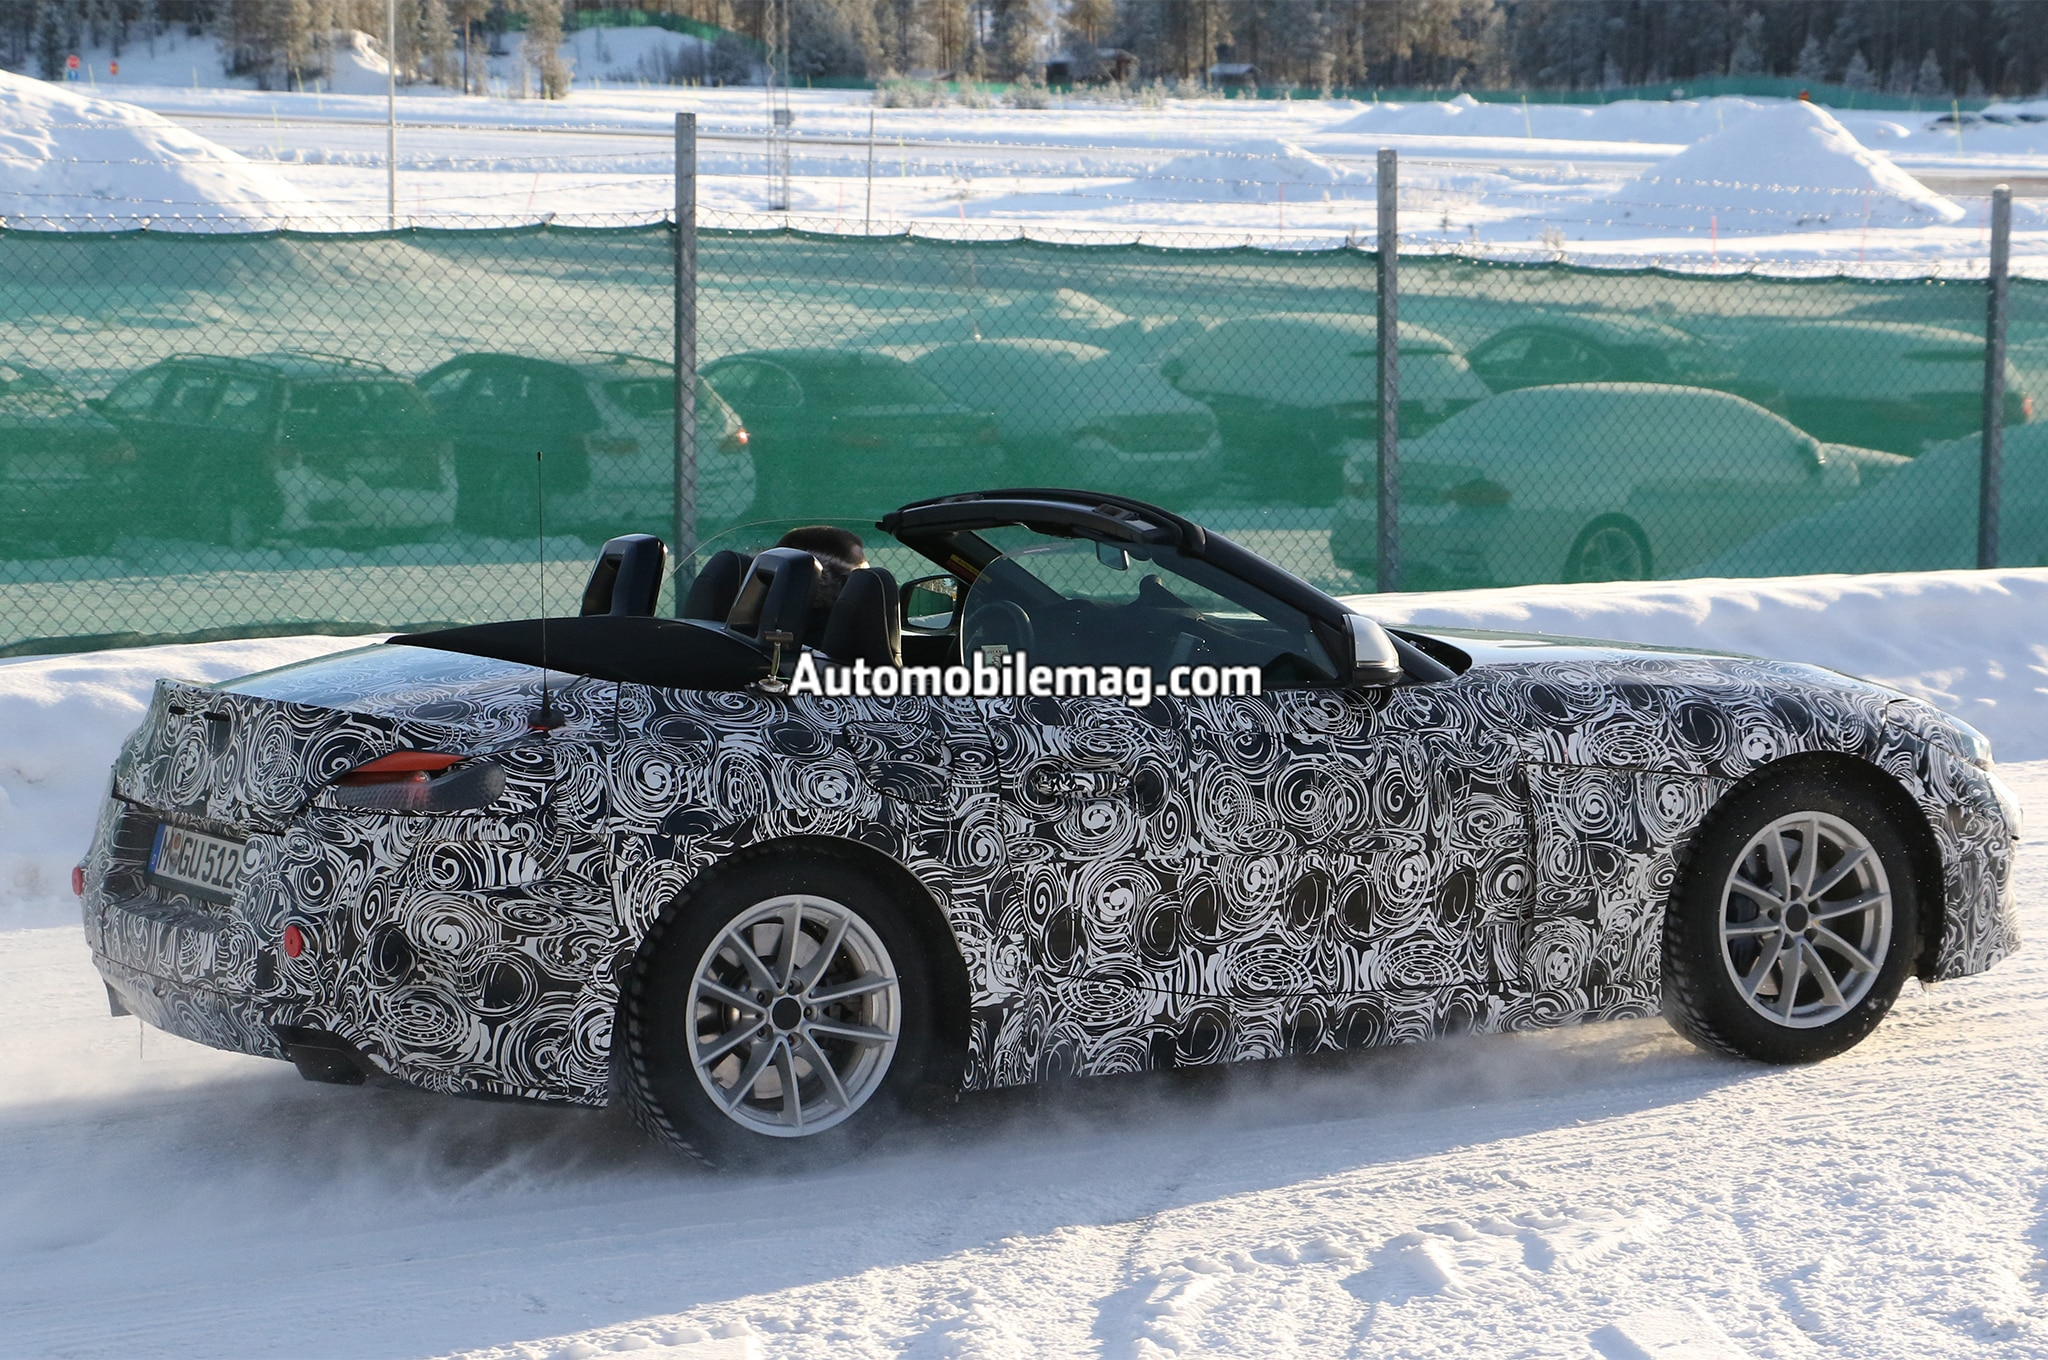 Bmw Z5 And Toyota Supra Caught Winter Testing Together